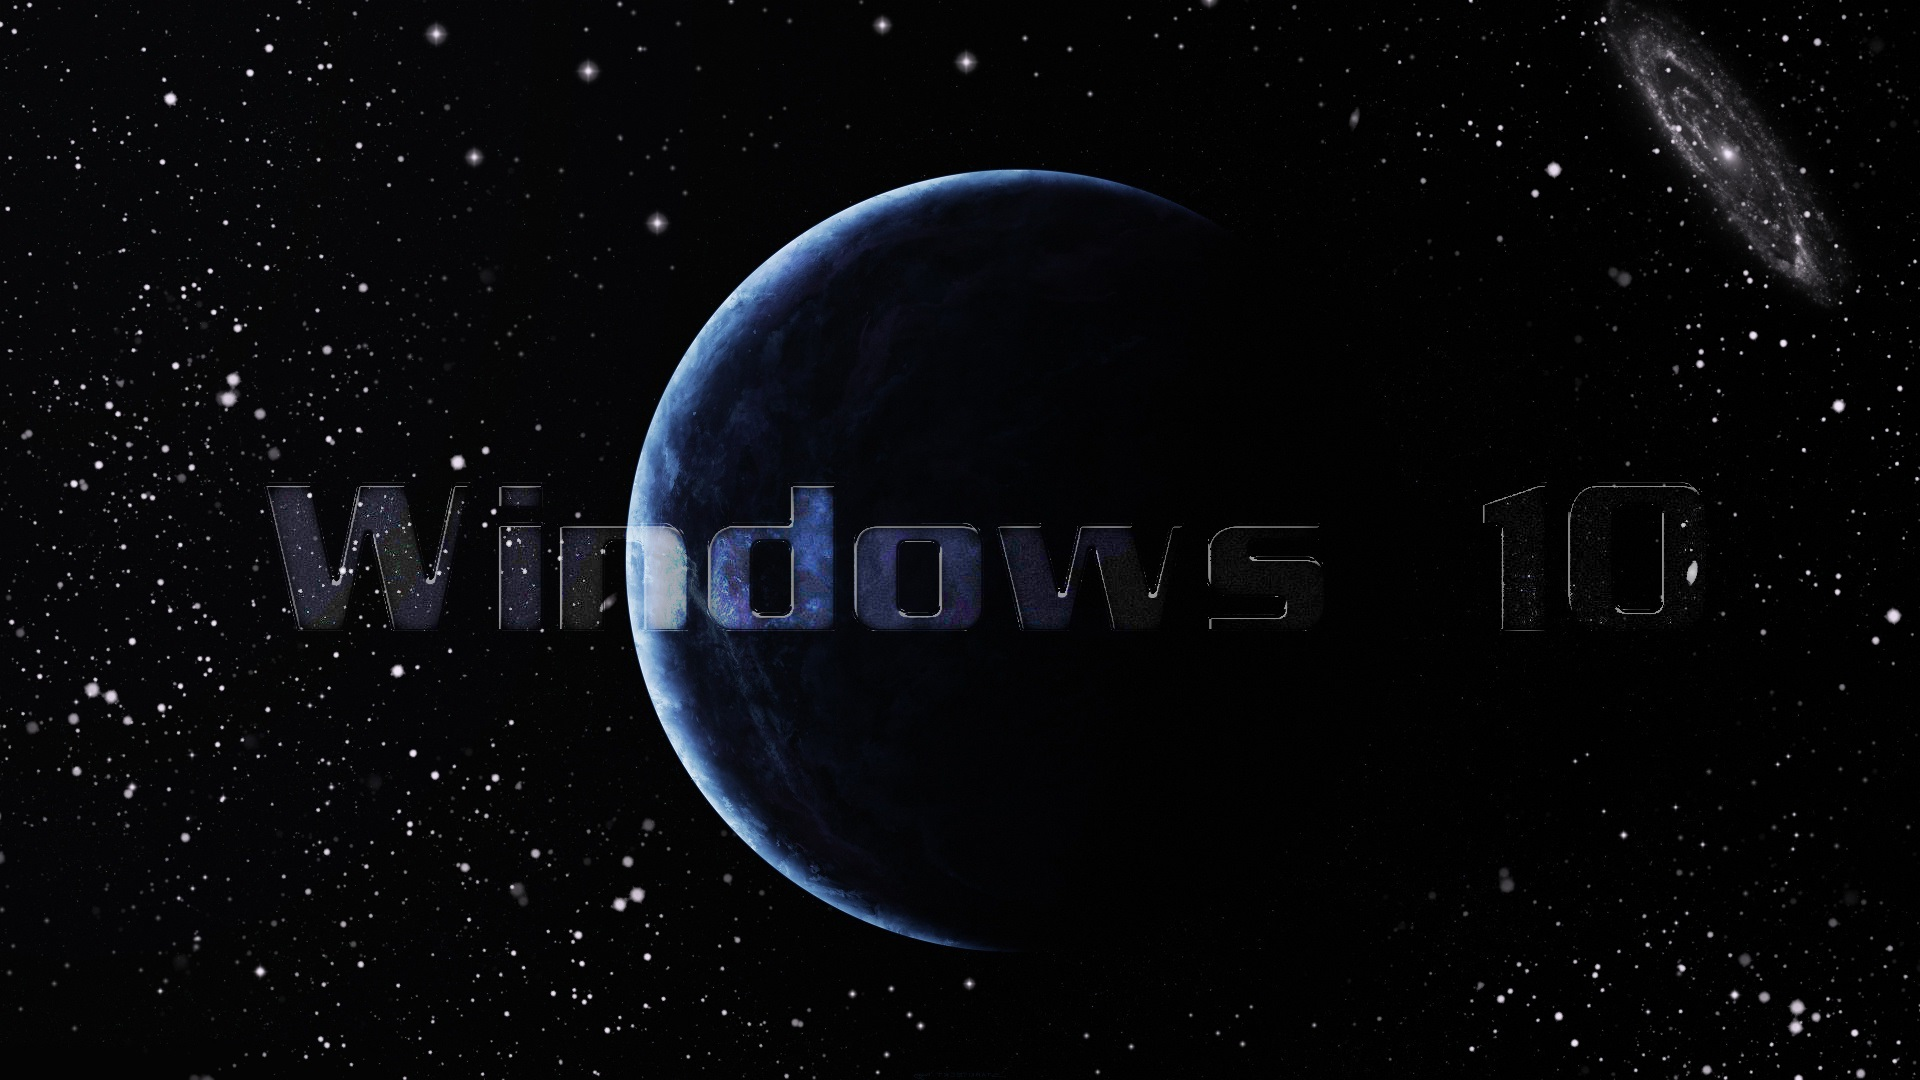 46+] Windows 10 HD Wallpaper 1920x1080